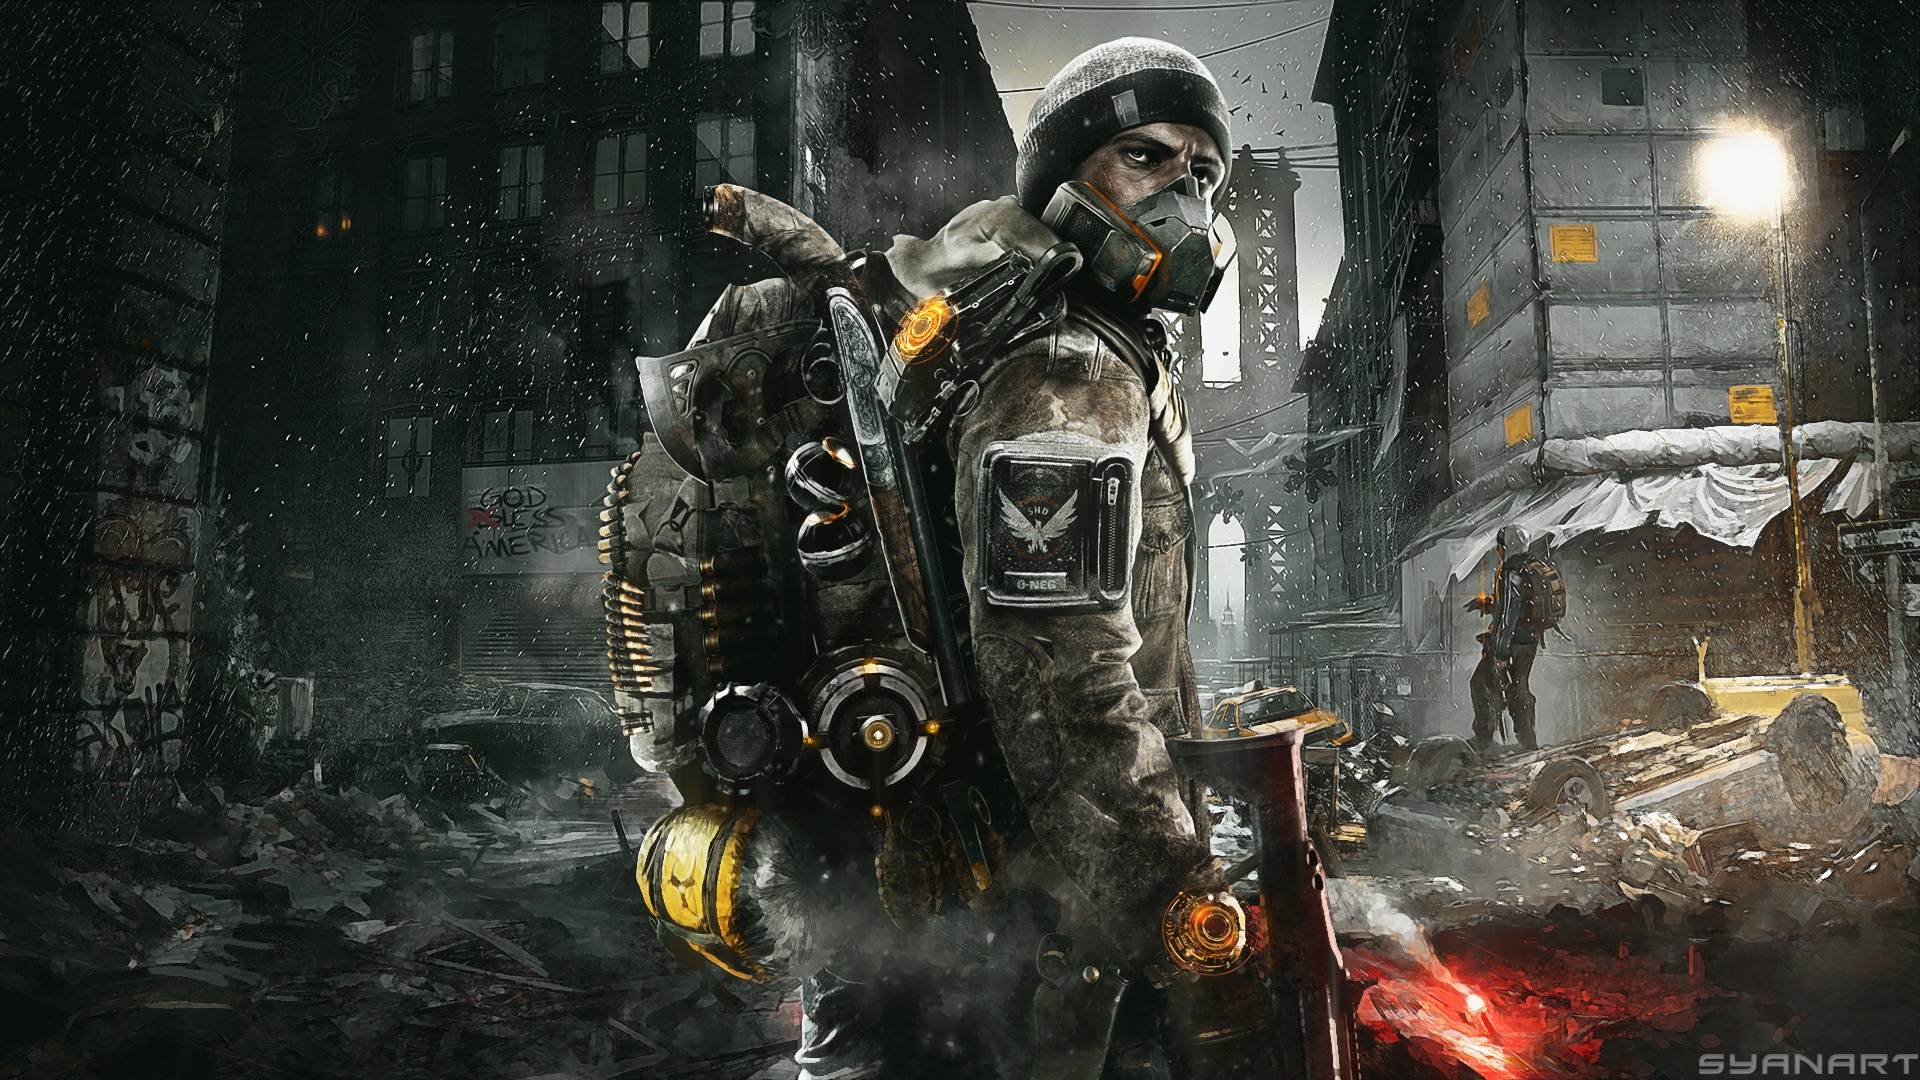 Tom Clancy's The Division Wallpapers (28 Wallpapers